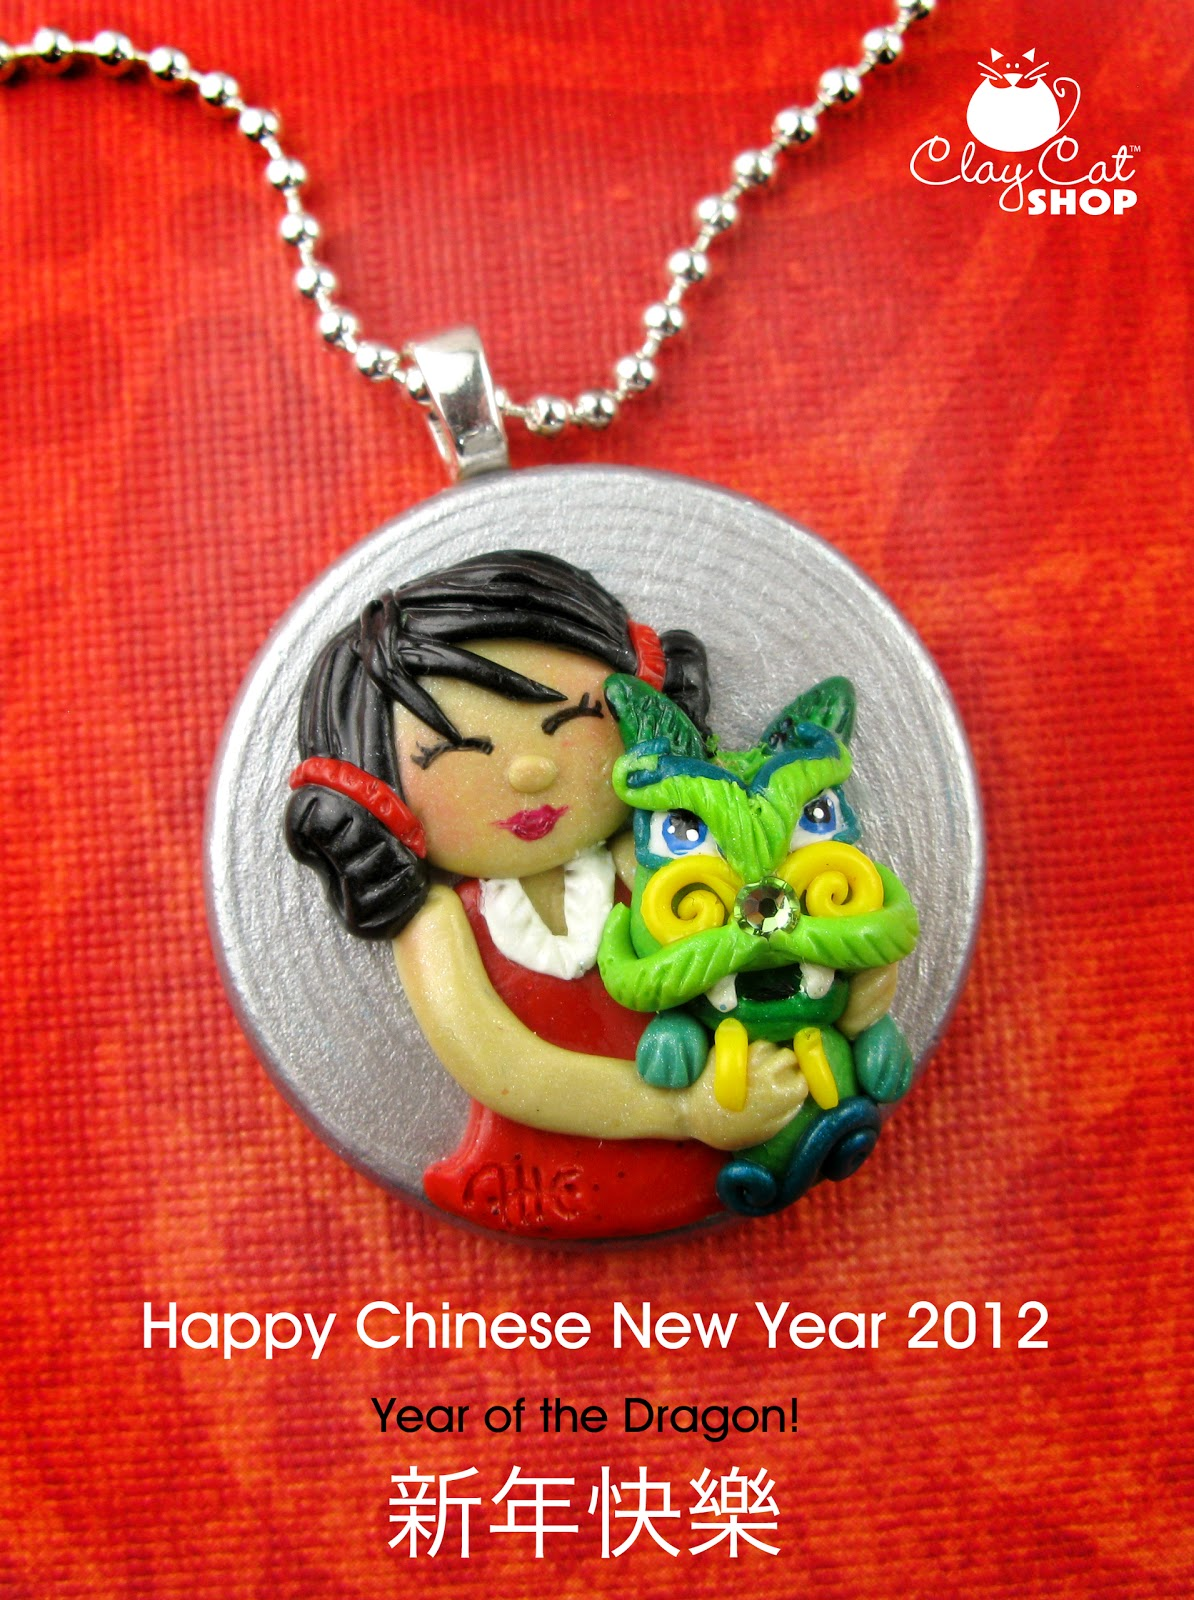 ClayCatShop's Blog: Happy Chinese New Year: Year of the Dragon